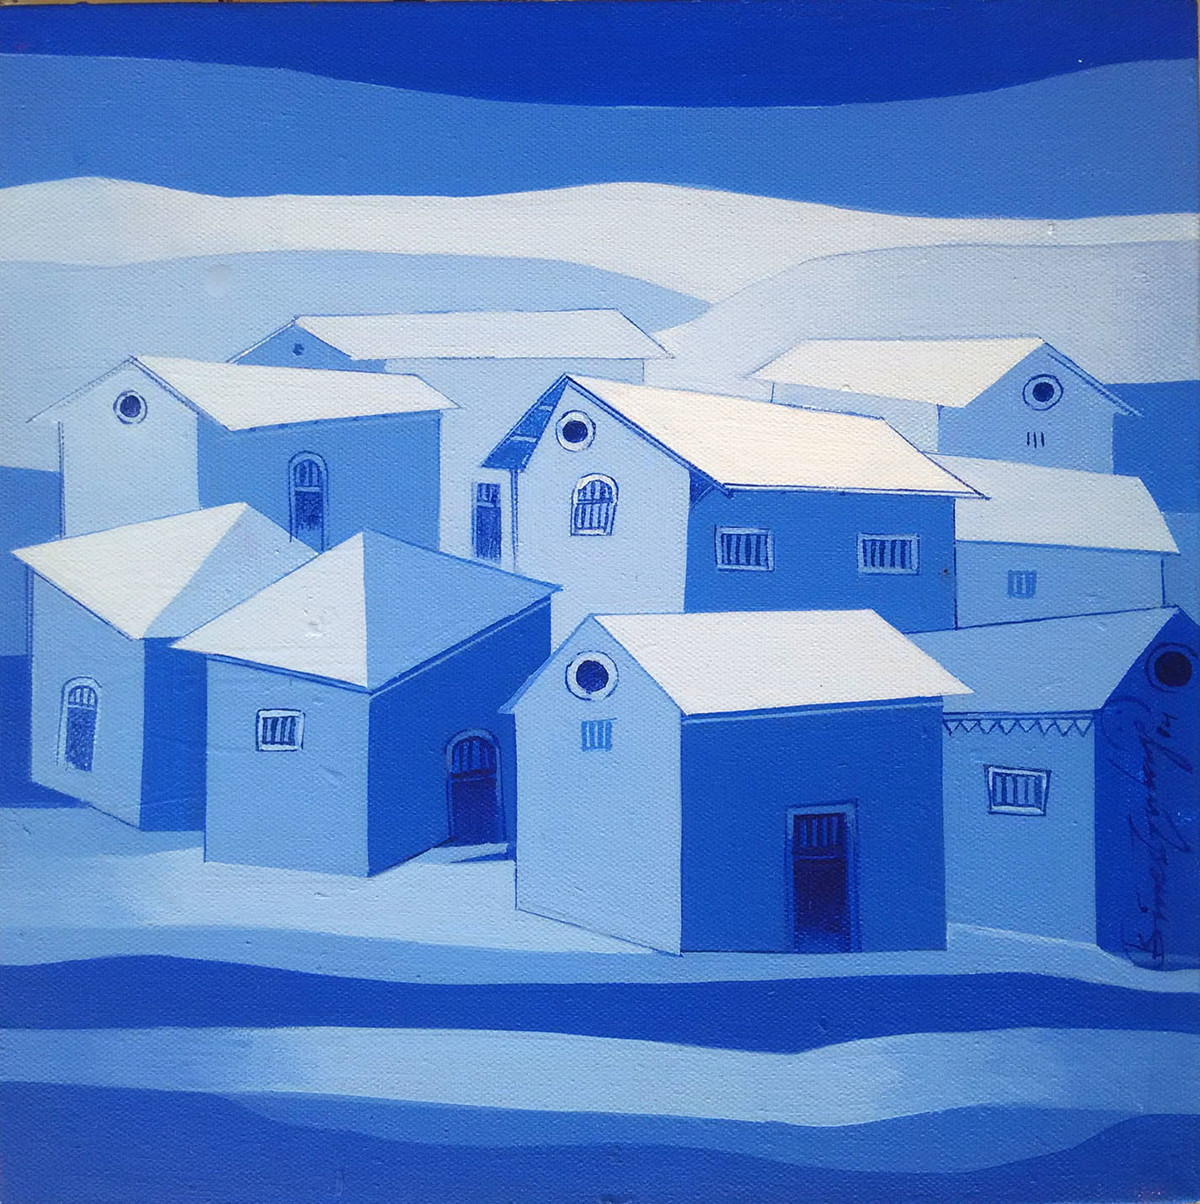 Village - 735 by Suresh Gulage, Decorative Painting, Acrylic on Canvas, Blue color